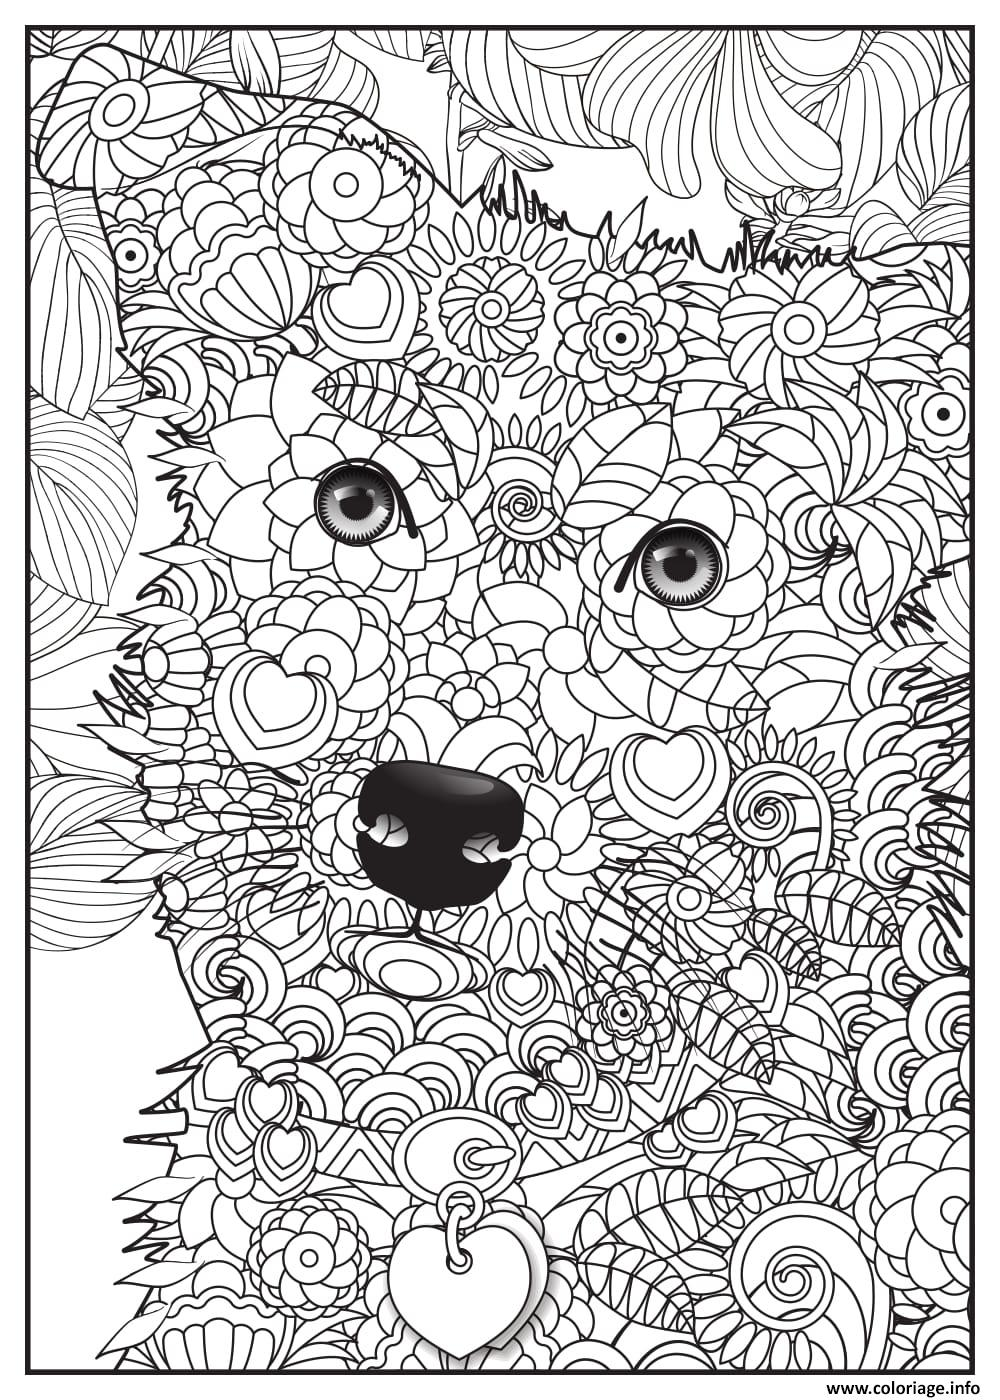 Coloriage chien border collie adulte animaux - Photo d animaux a imprimer gratuitement ...